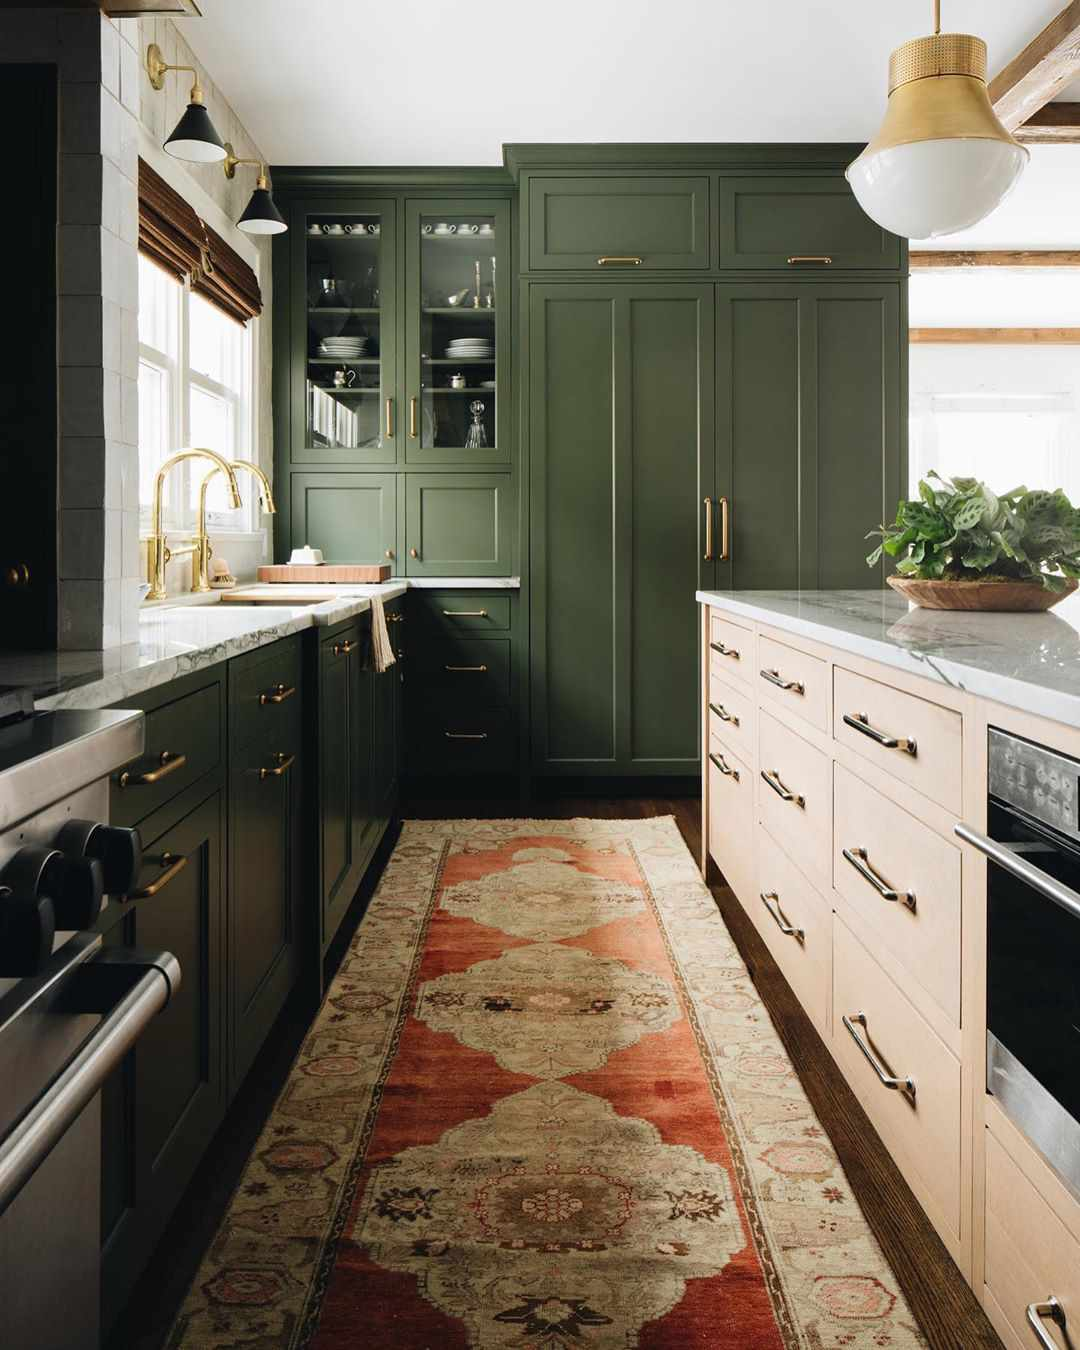 Oilve green cabinets with runner